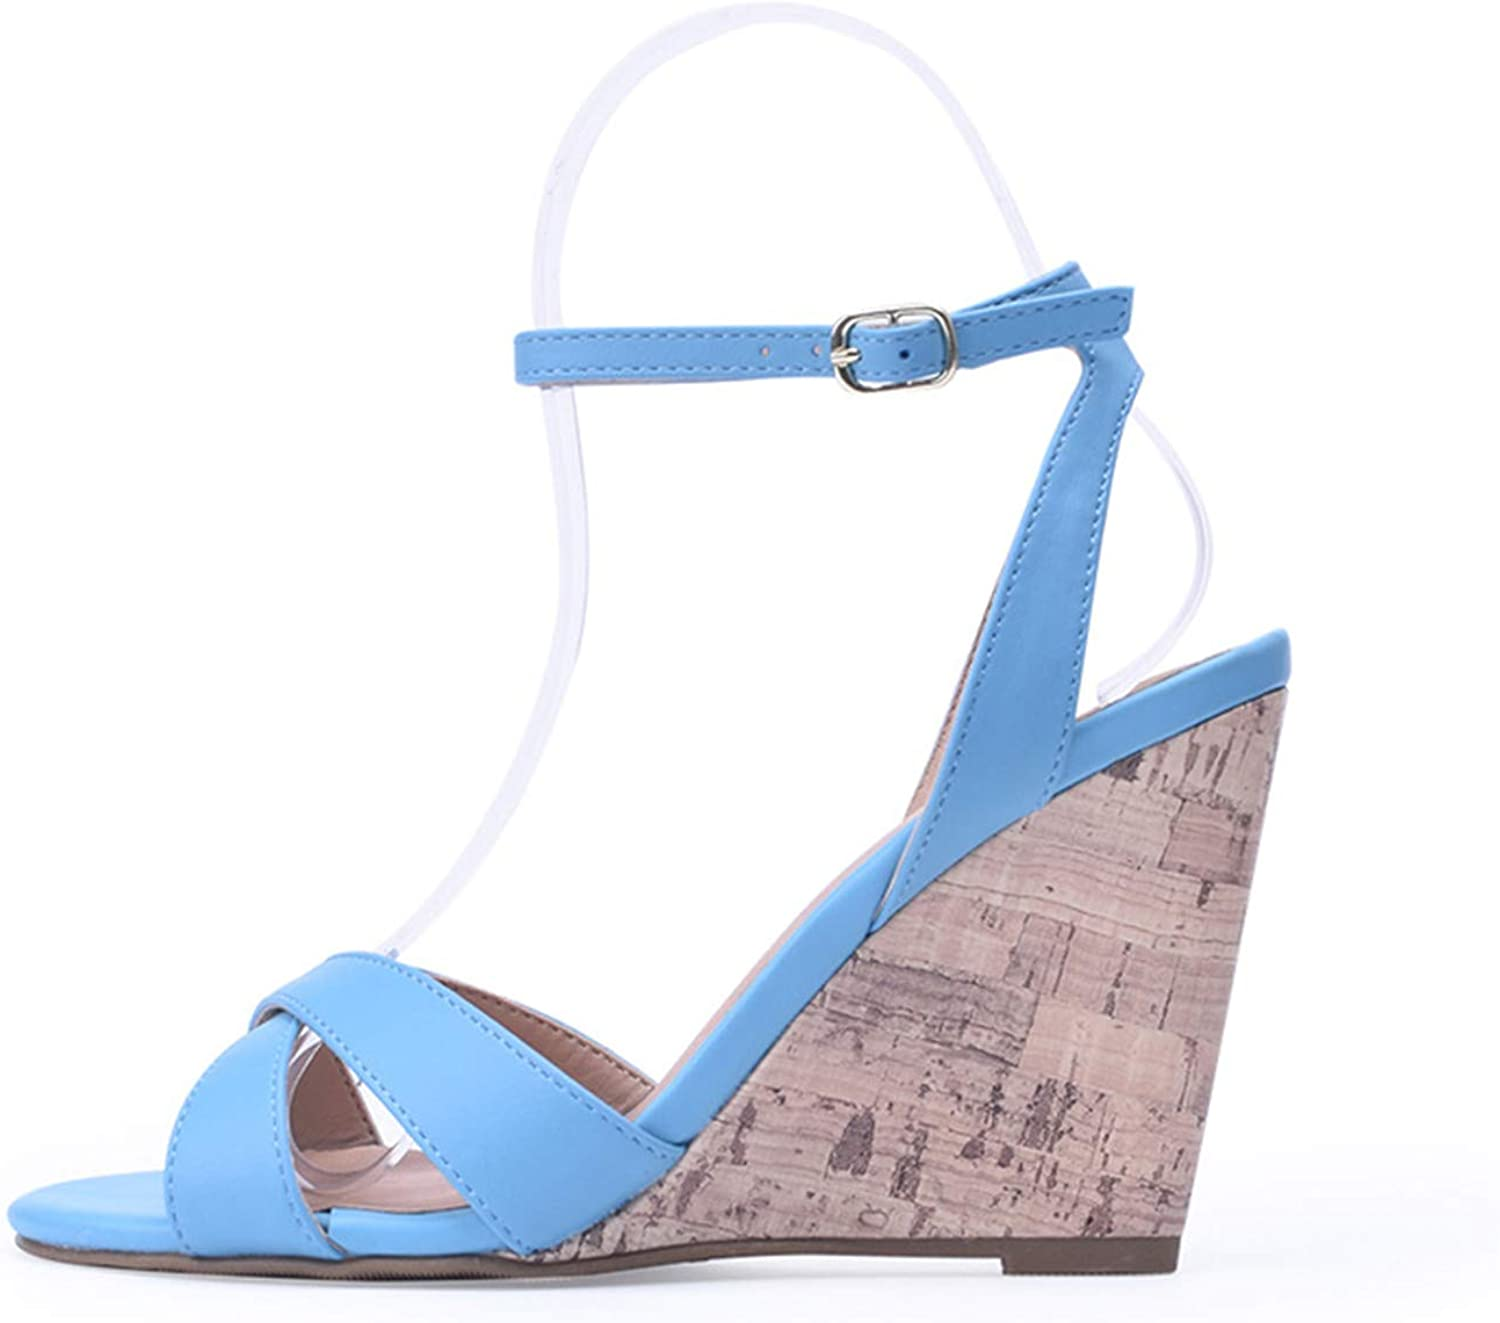 Huntty High Heels Sandals Female shoes Bohemian Sandals 10cm bluee White Floral